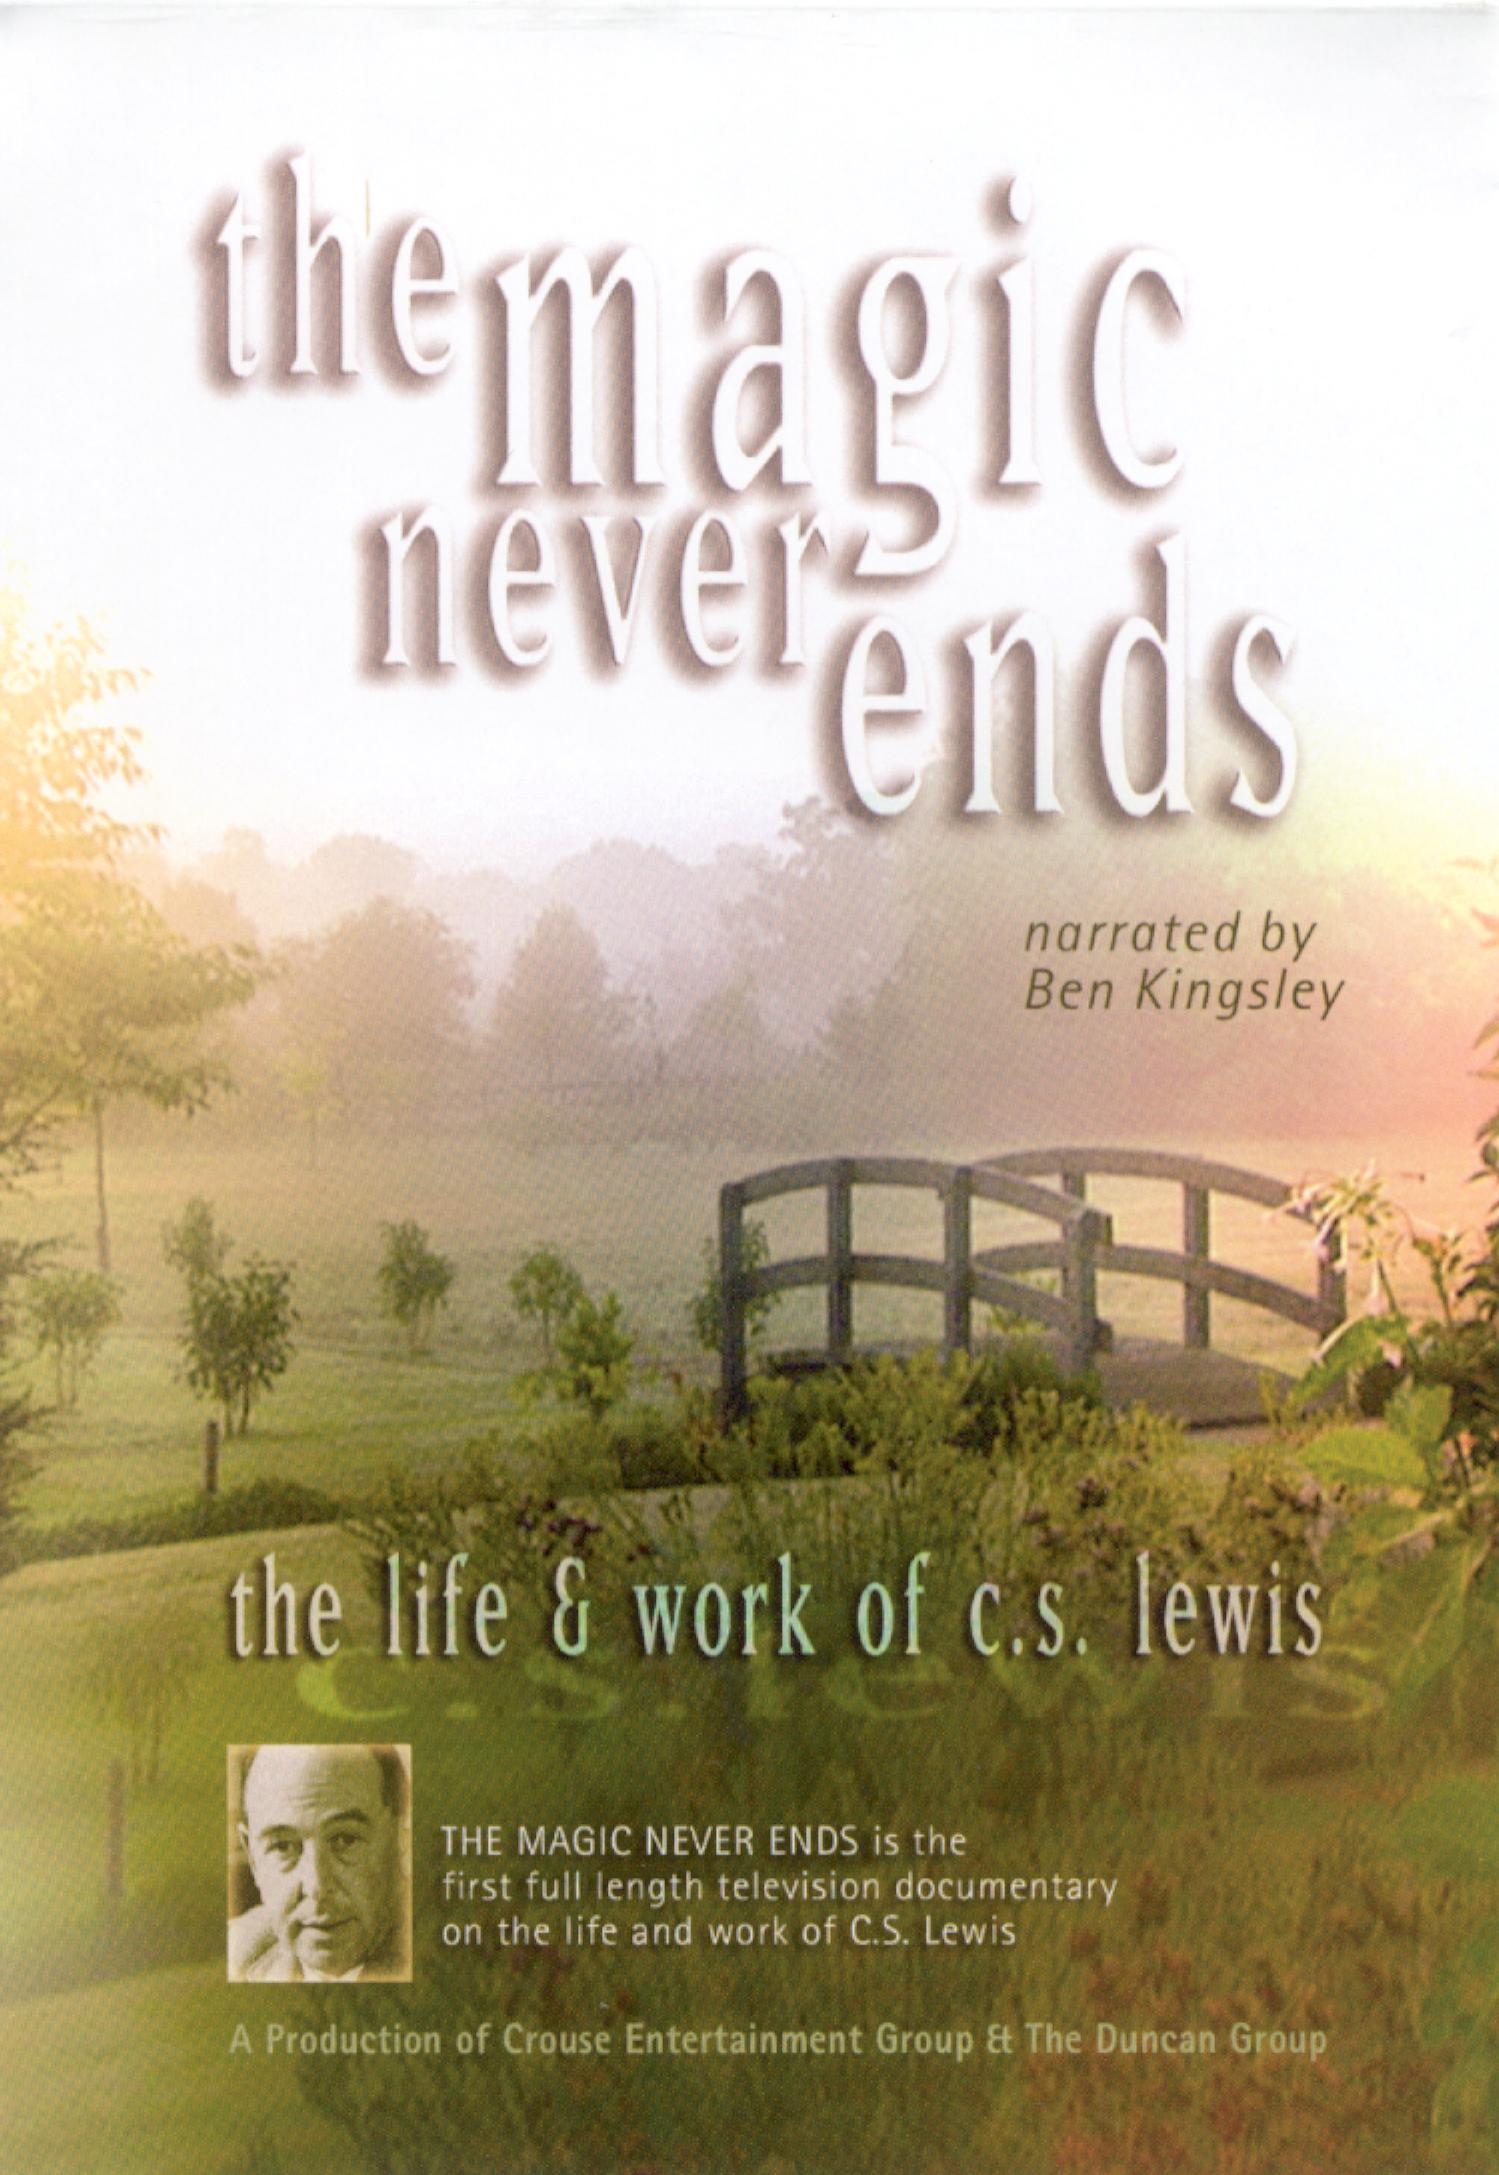 The Magic Never Ends: The Life & Work of C.S. Lewis